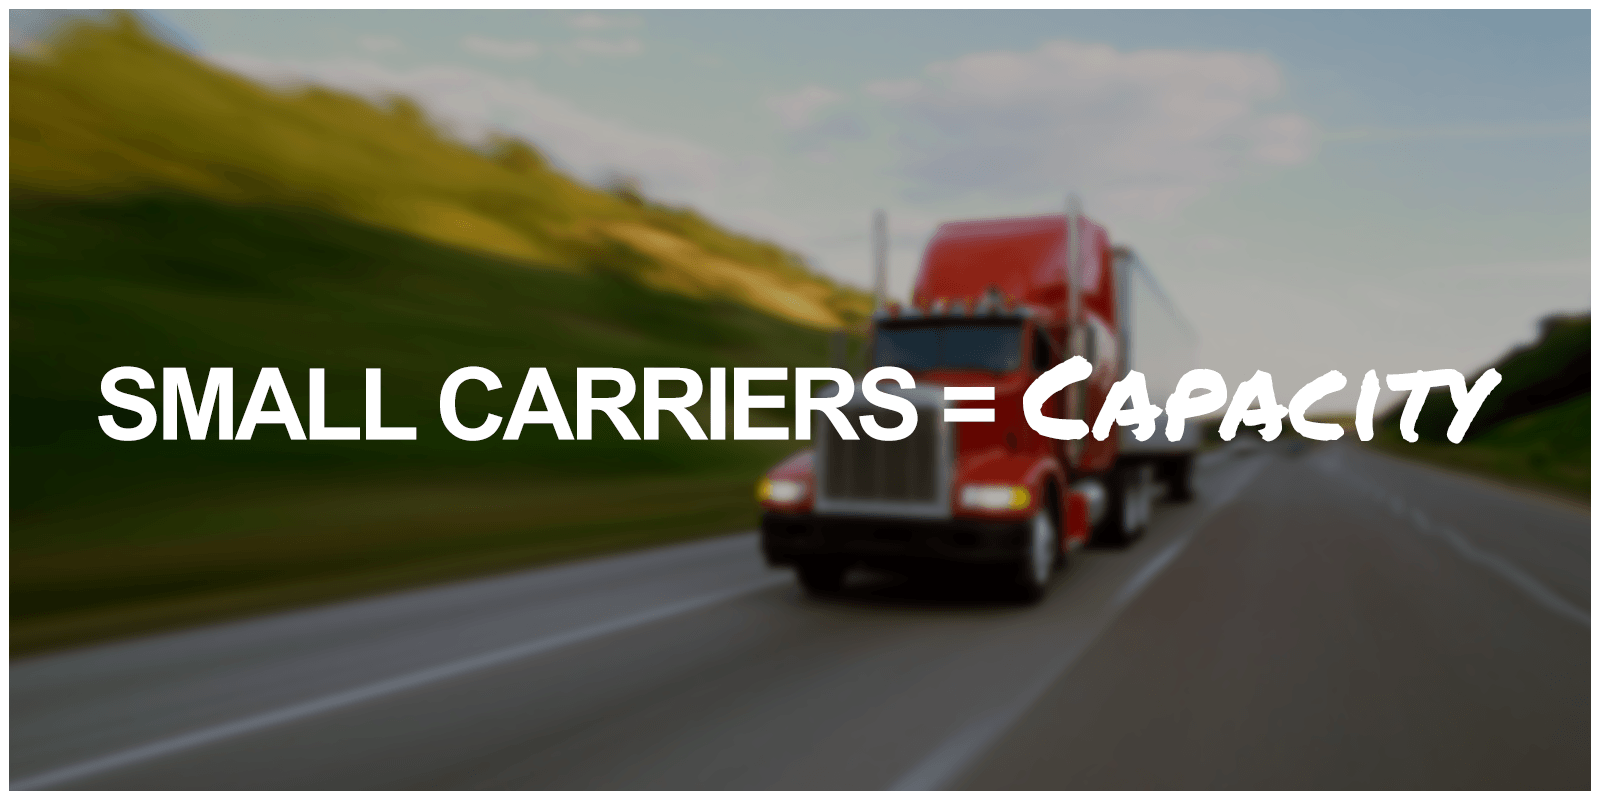 Picture of truck on highway with Small Carriers = Capacity